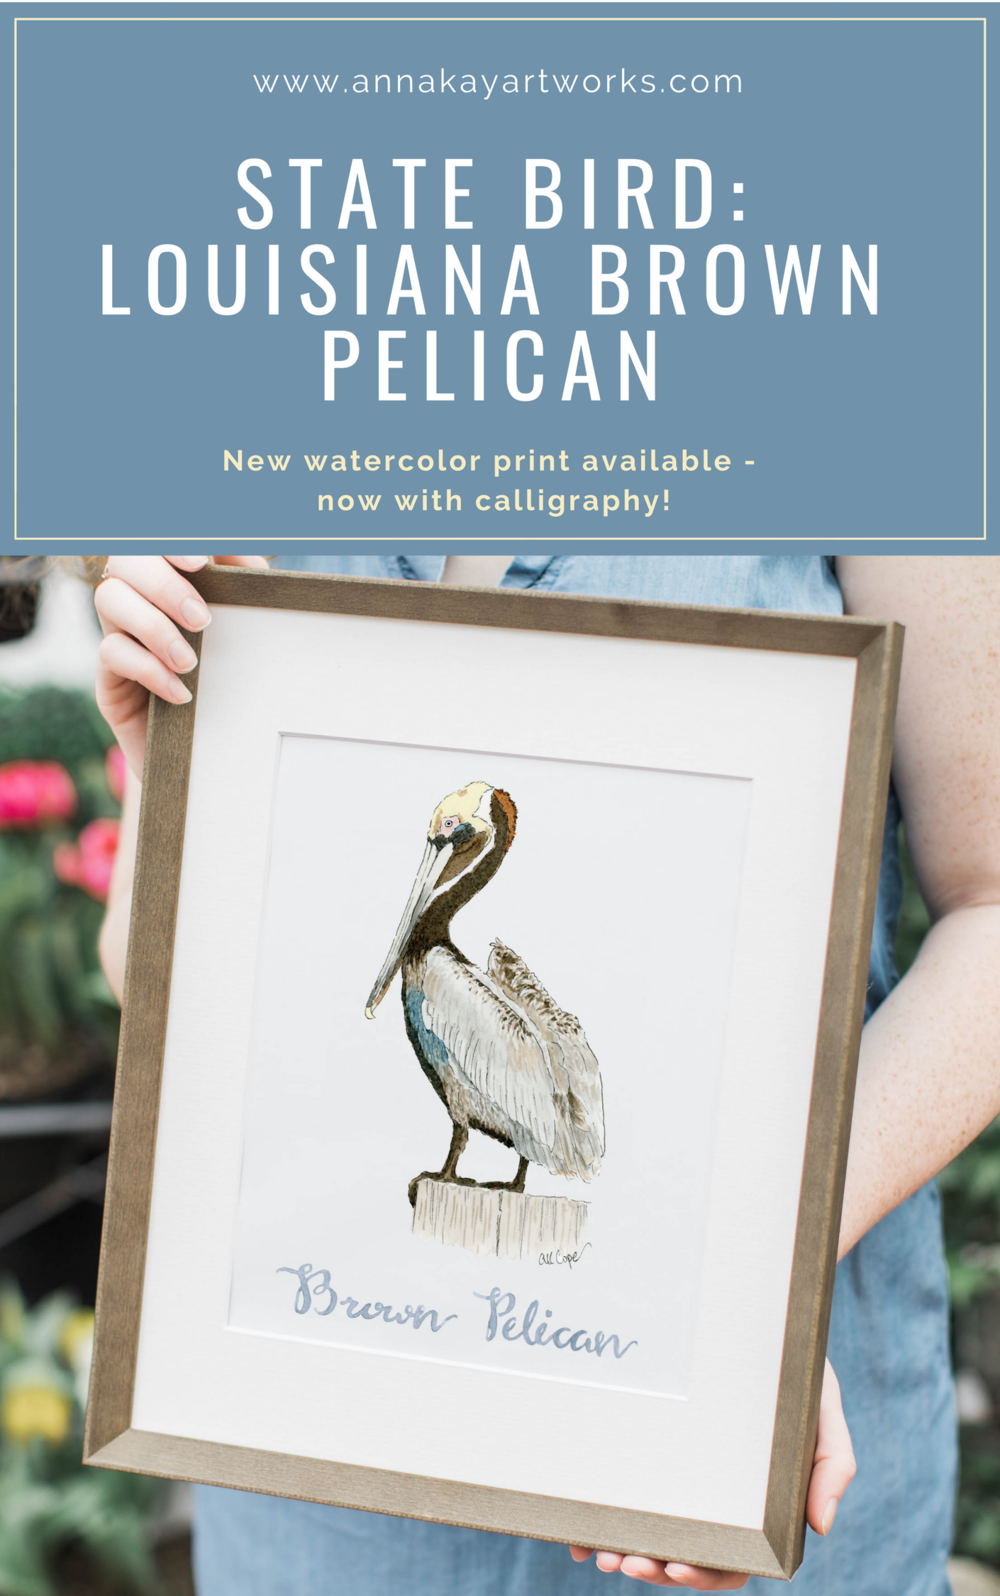 Watercolor Pelican Louisiana State Bird Anna Kay Artworks